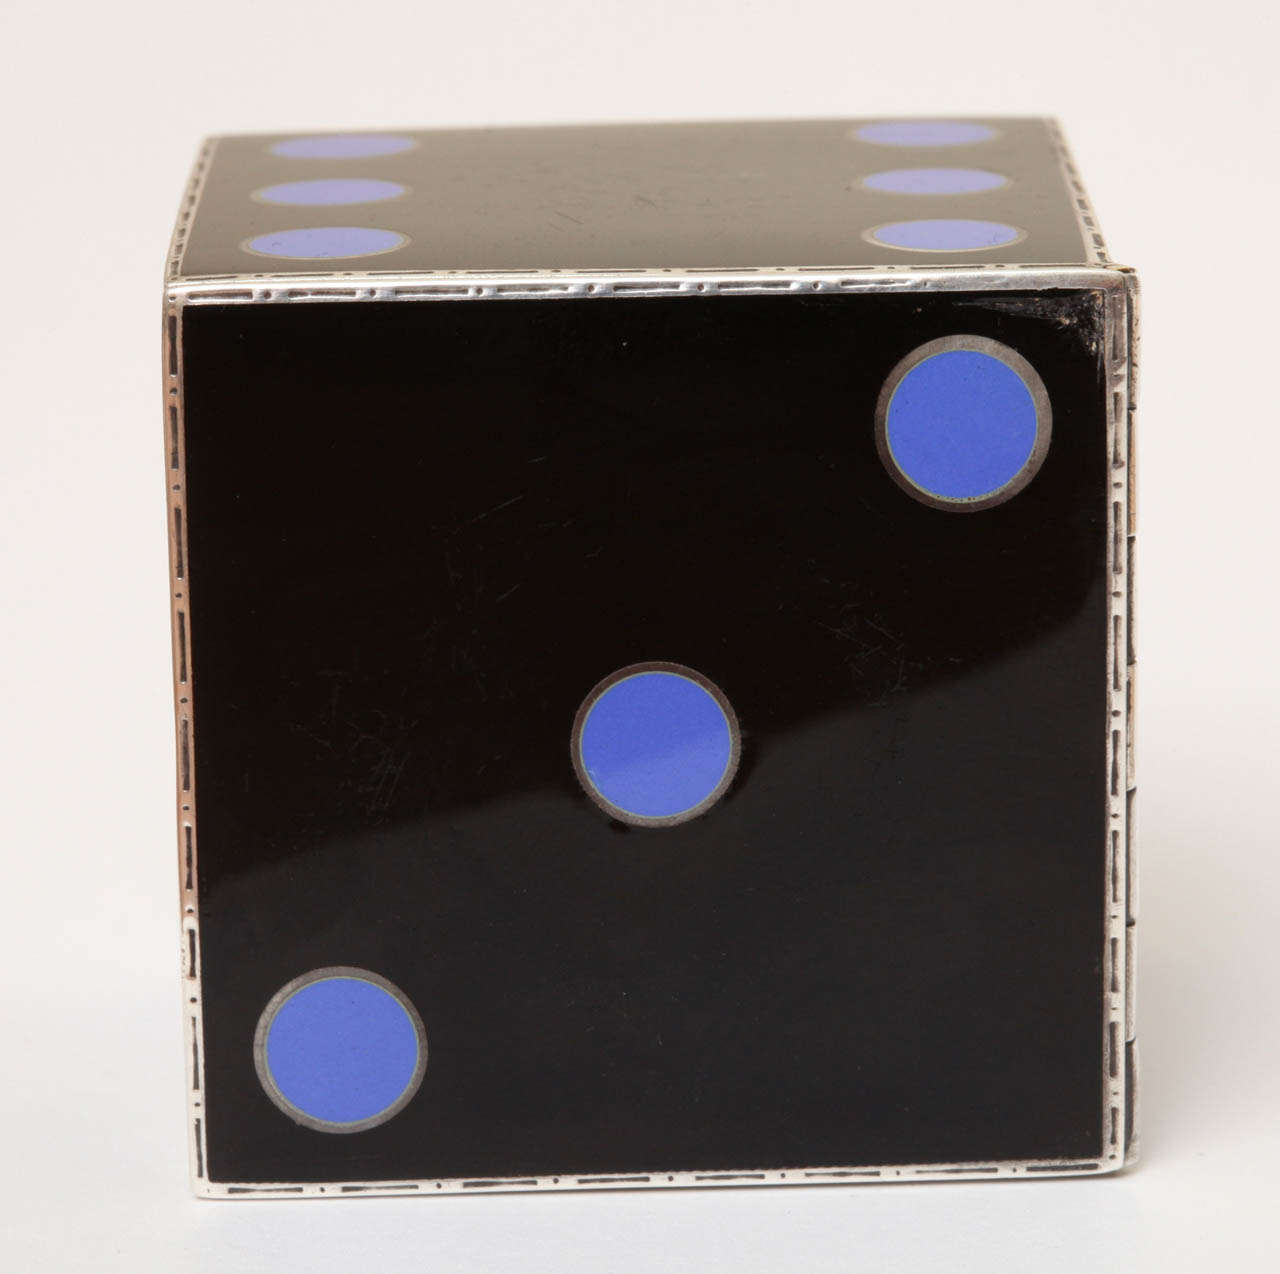 20th Century Art Deco Enamel Clock by J.E. Caldwell For Sale